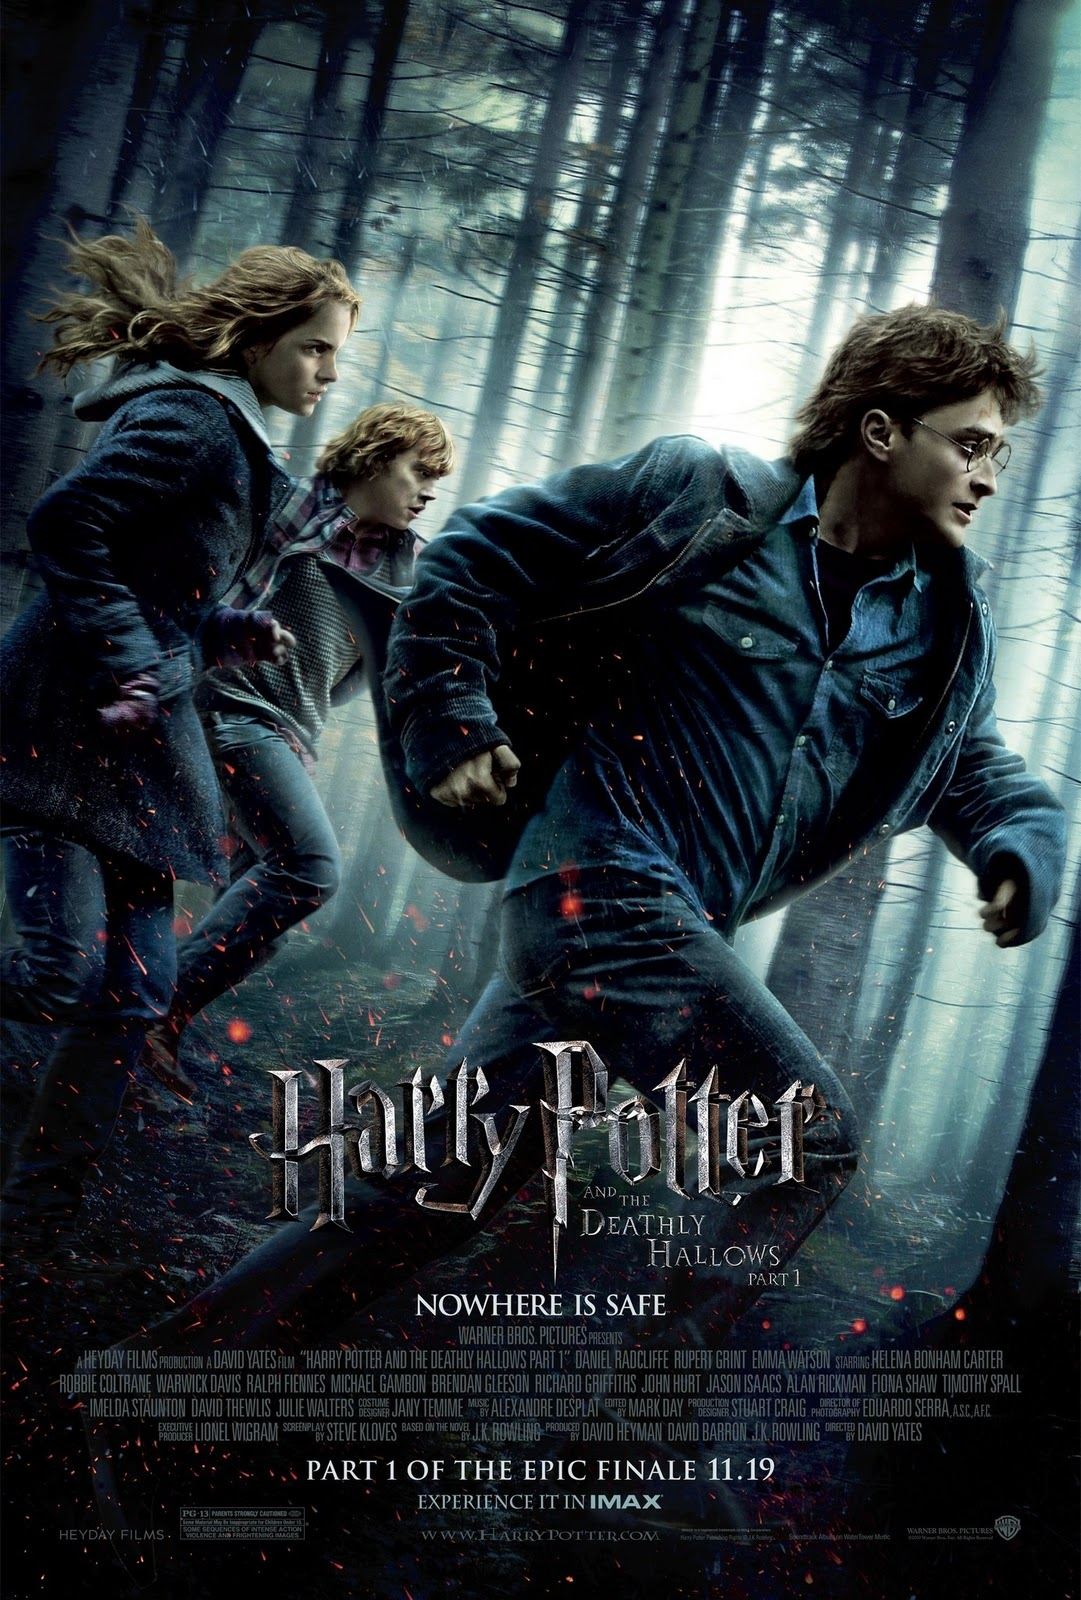 http://1.bp.blogspot.com/_PzsHUahDyDU/TOVZFsD7CwI/AAAAAAAAFmA/6m3uyuZgChY/s1600/harry_potter_and_the_deathly_hallows_part_1_movie_poster2.jpg